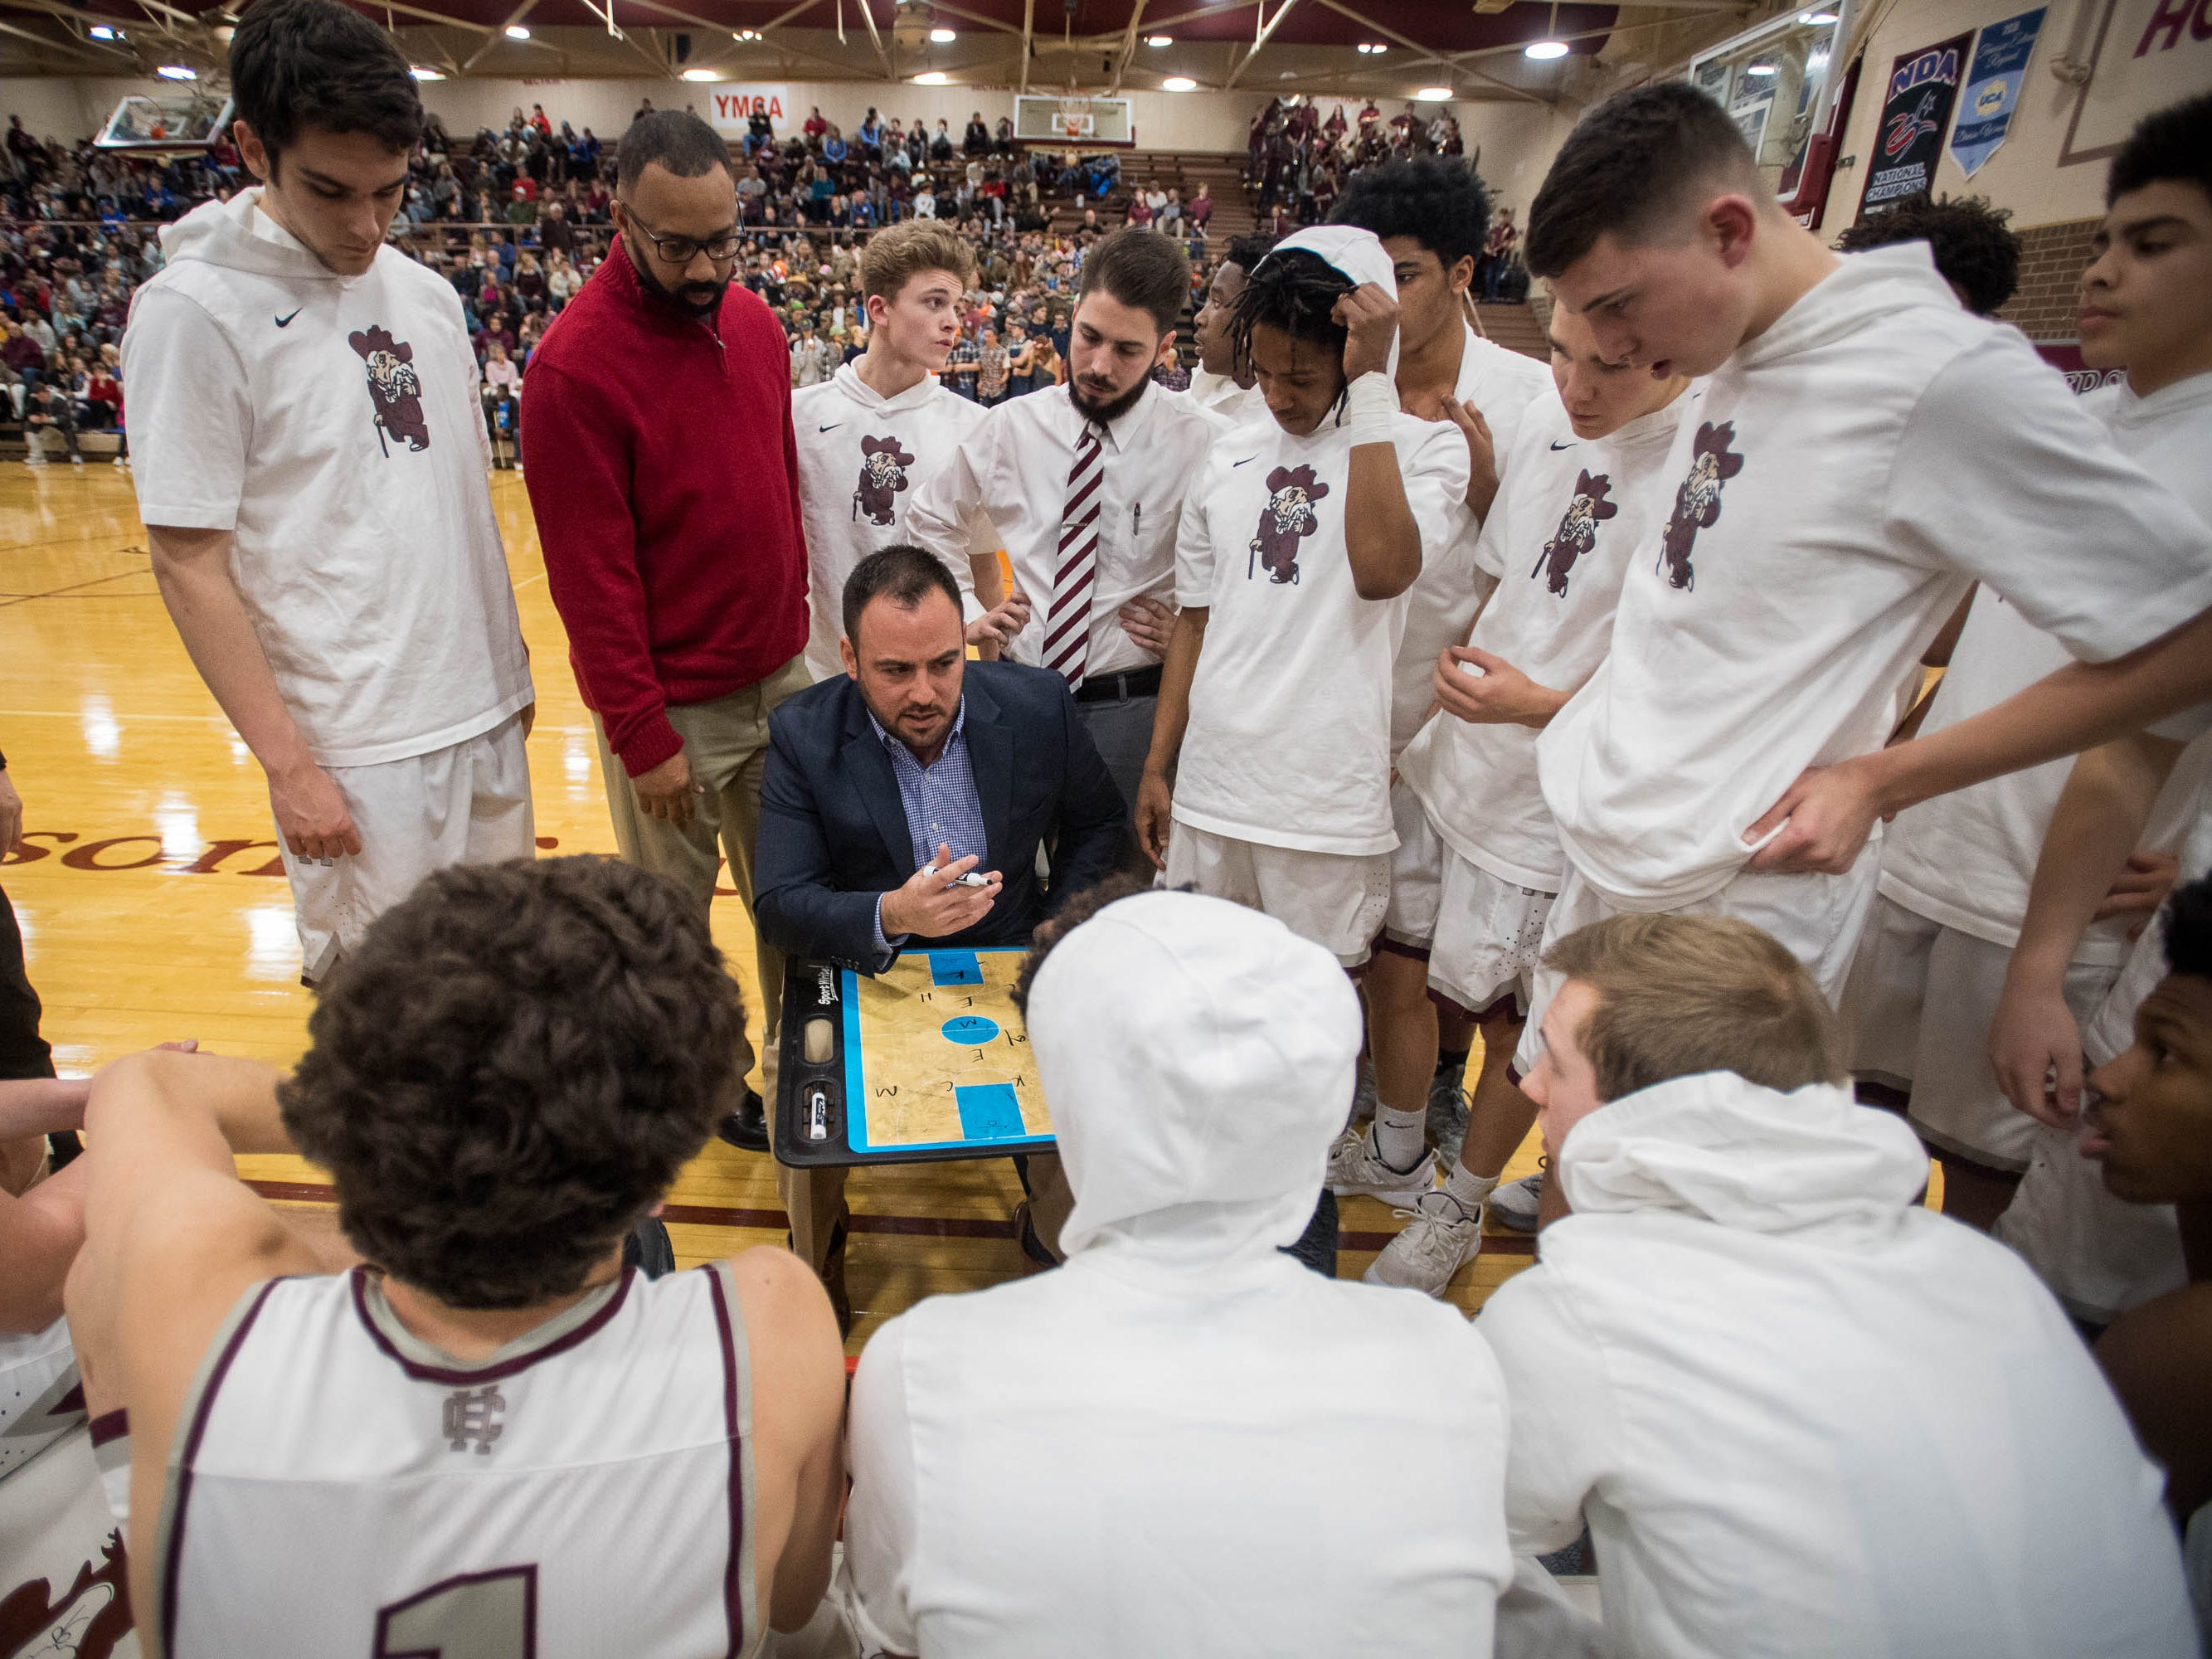 Henderson Head Coach Tyler Smithart talks to his team before tipoff as district rivals Union County Braves play the Henderson County Colonels at Colonel Gym in Henderson Tuesday, January 29, 2019.